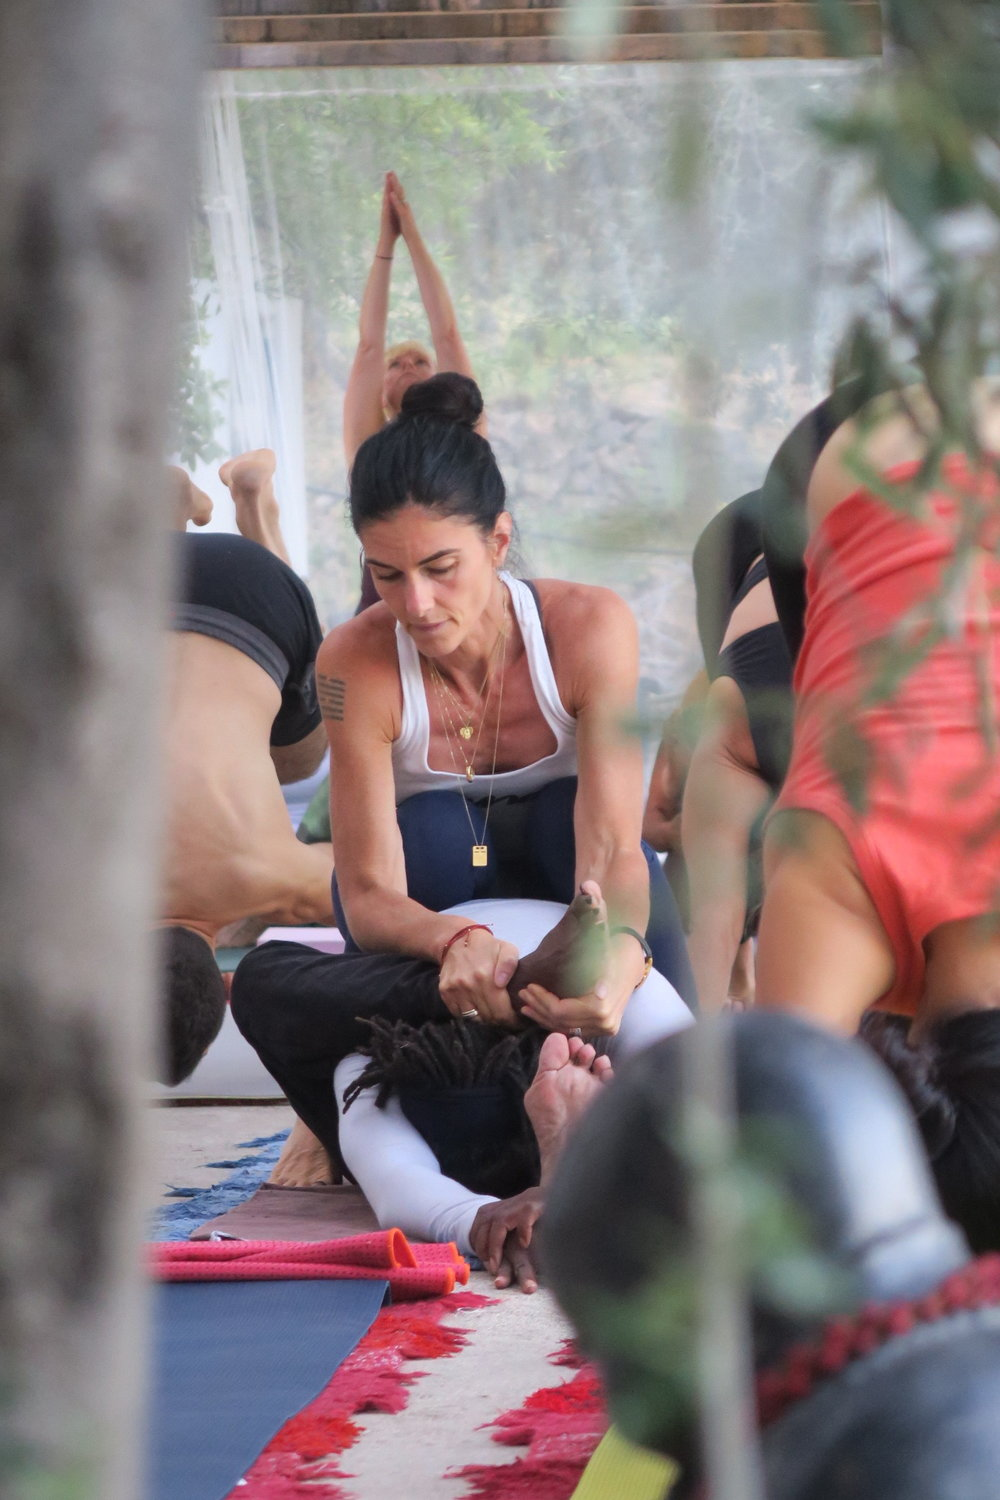 Ashtanga Yoga & Pranayama Retreat with Kia Naddermier in Spain 2016-2018